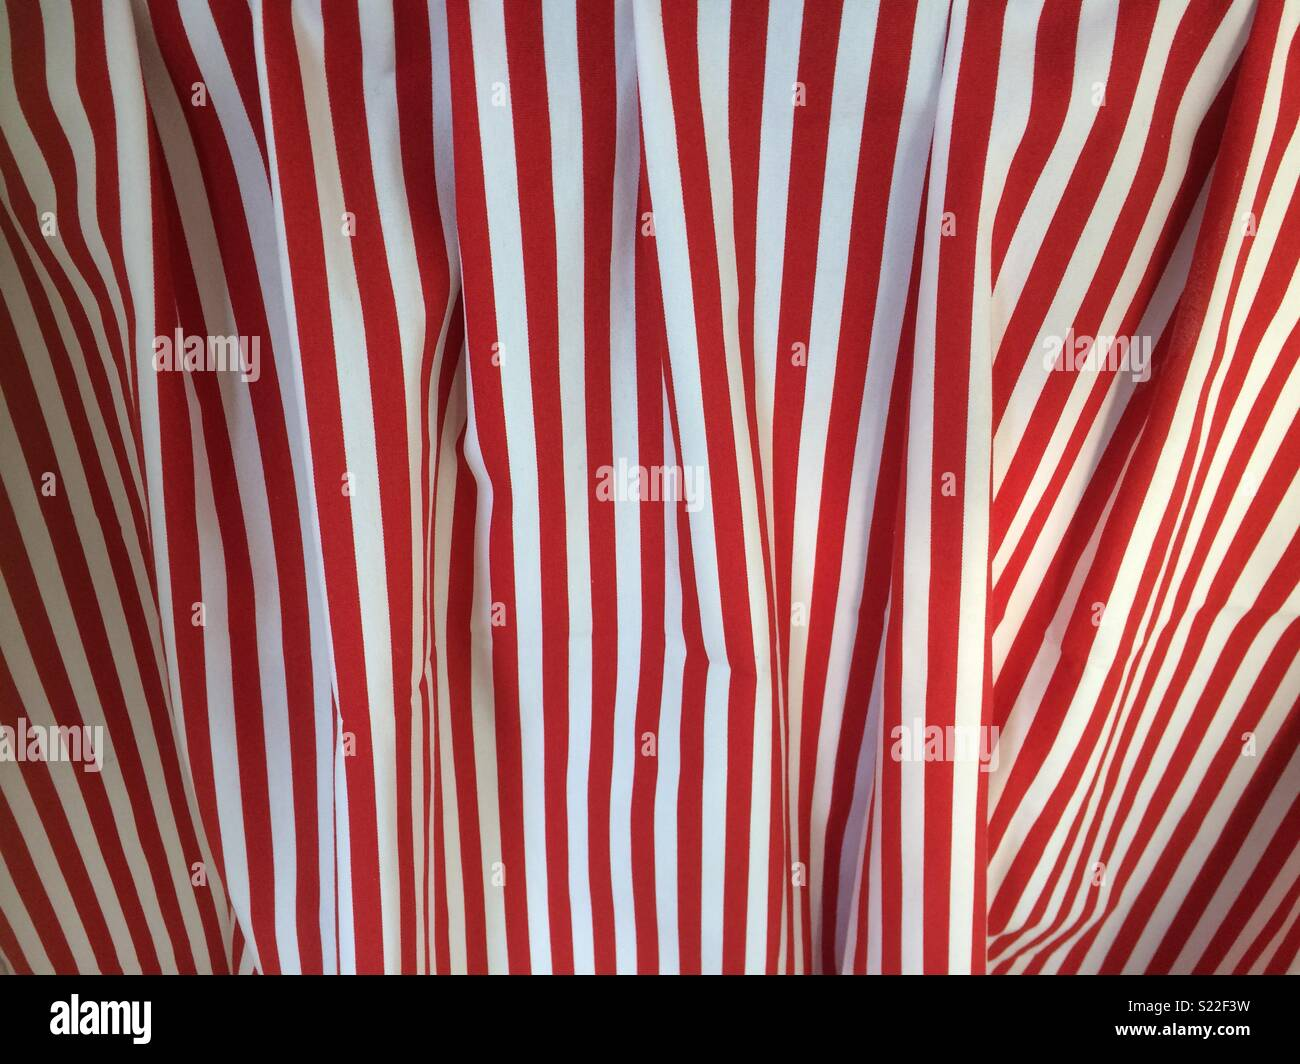 Red and white striped fabric - Stock Image